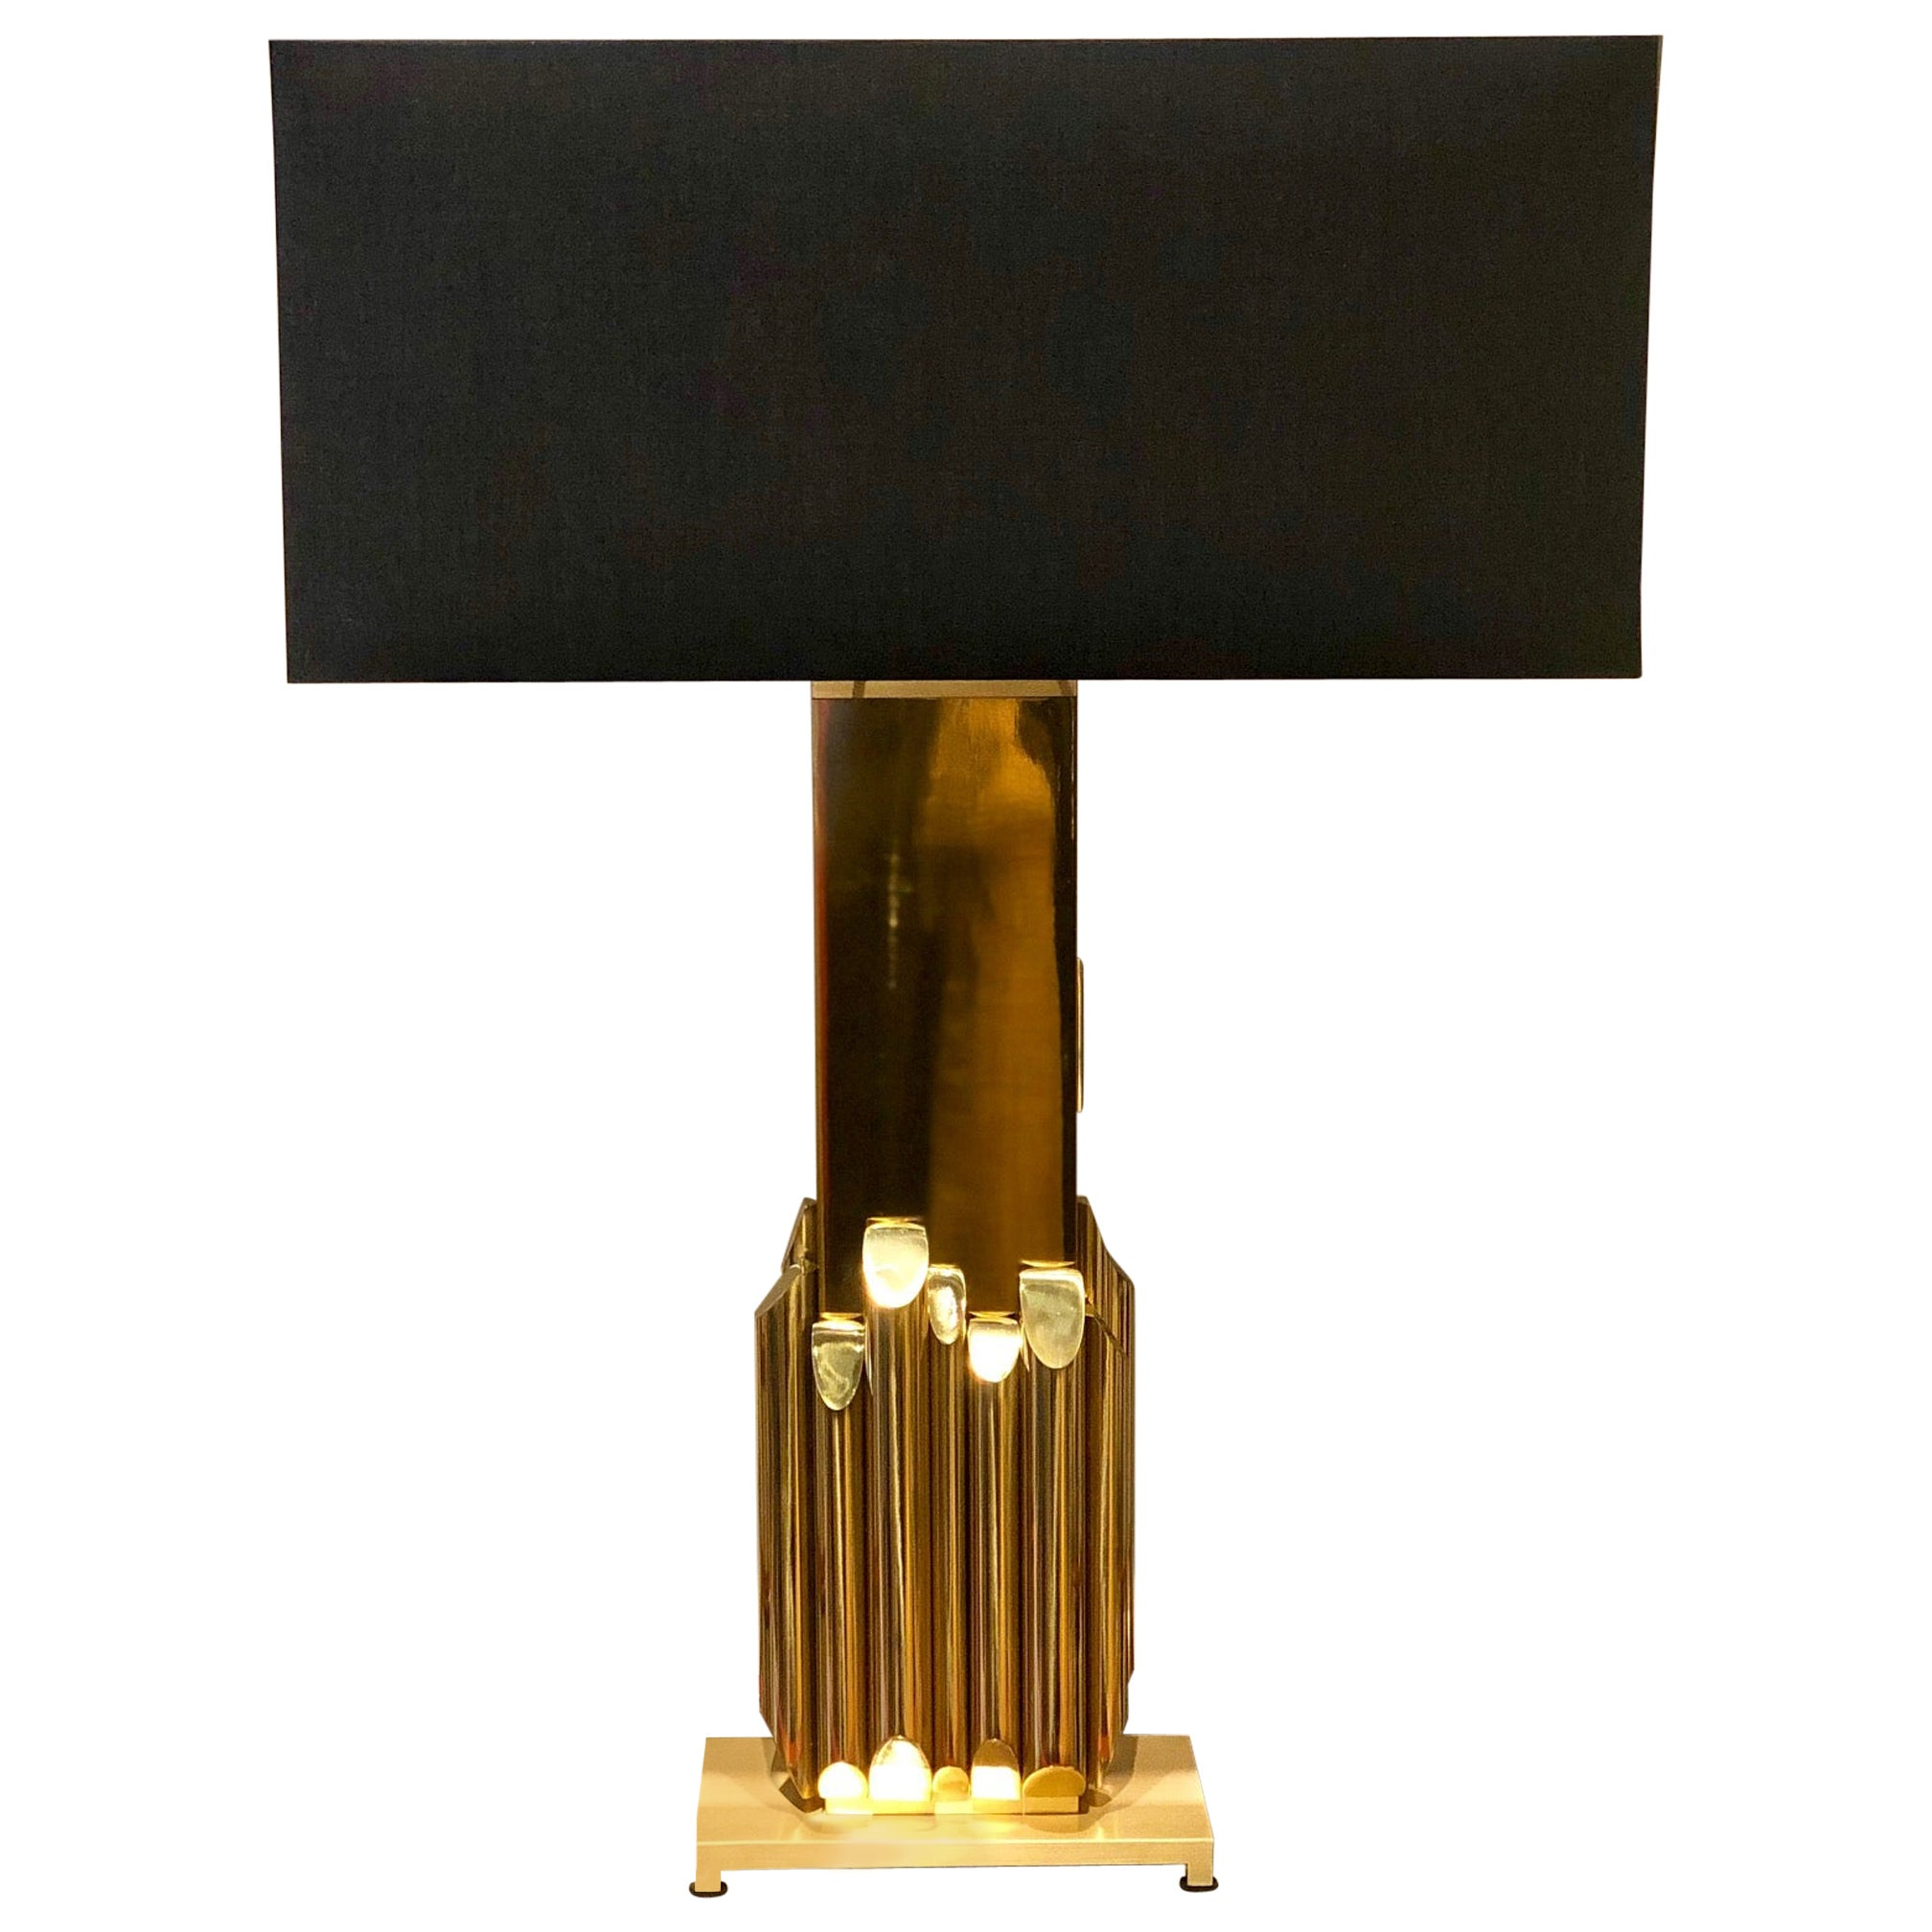 Solid Brass Table Lamp by Luciano Frigerio, Frigerio Desio, 1970s, Made in Italy